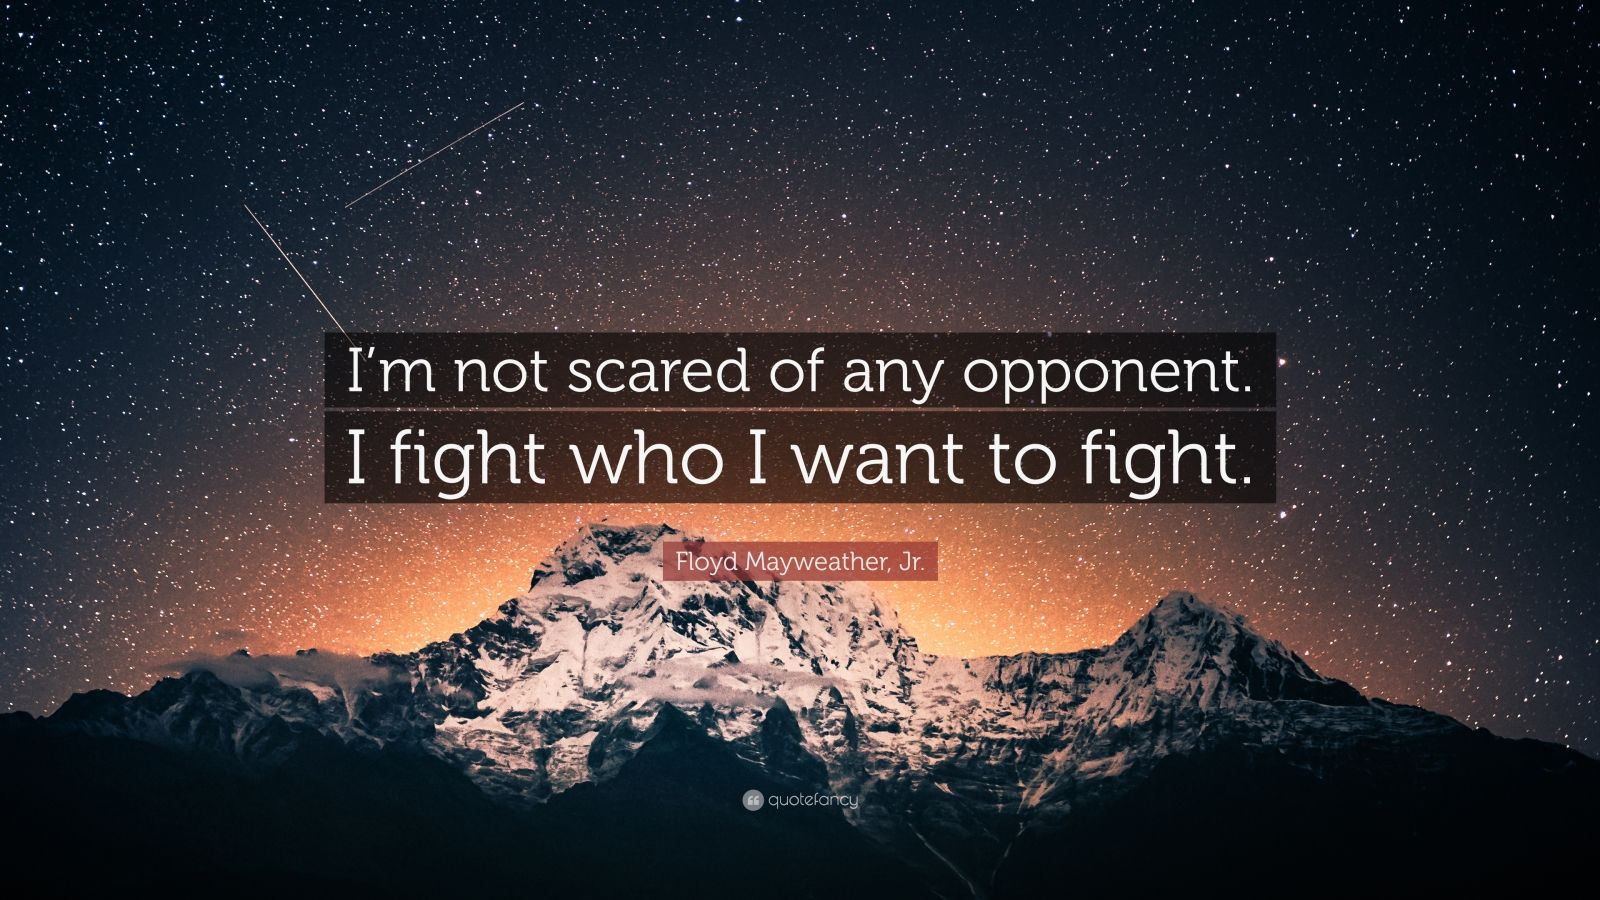 """Floyd Mayweather, Jr. Quote: """"I'm not scared of any opponent. I fight who I want to fight."""""""